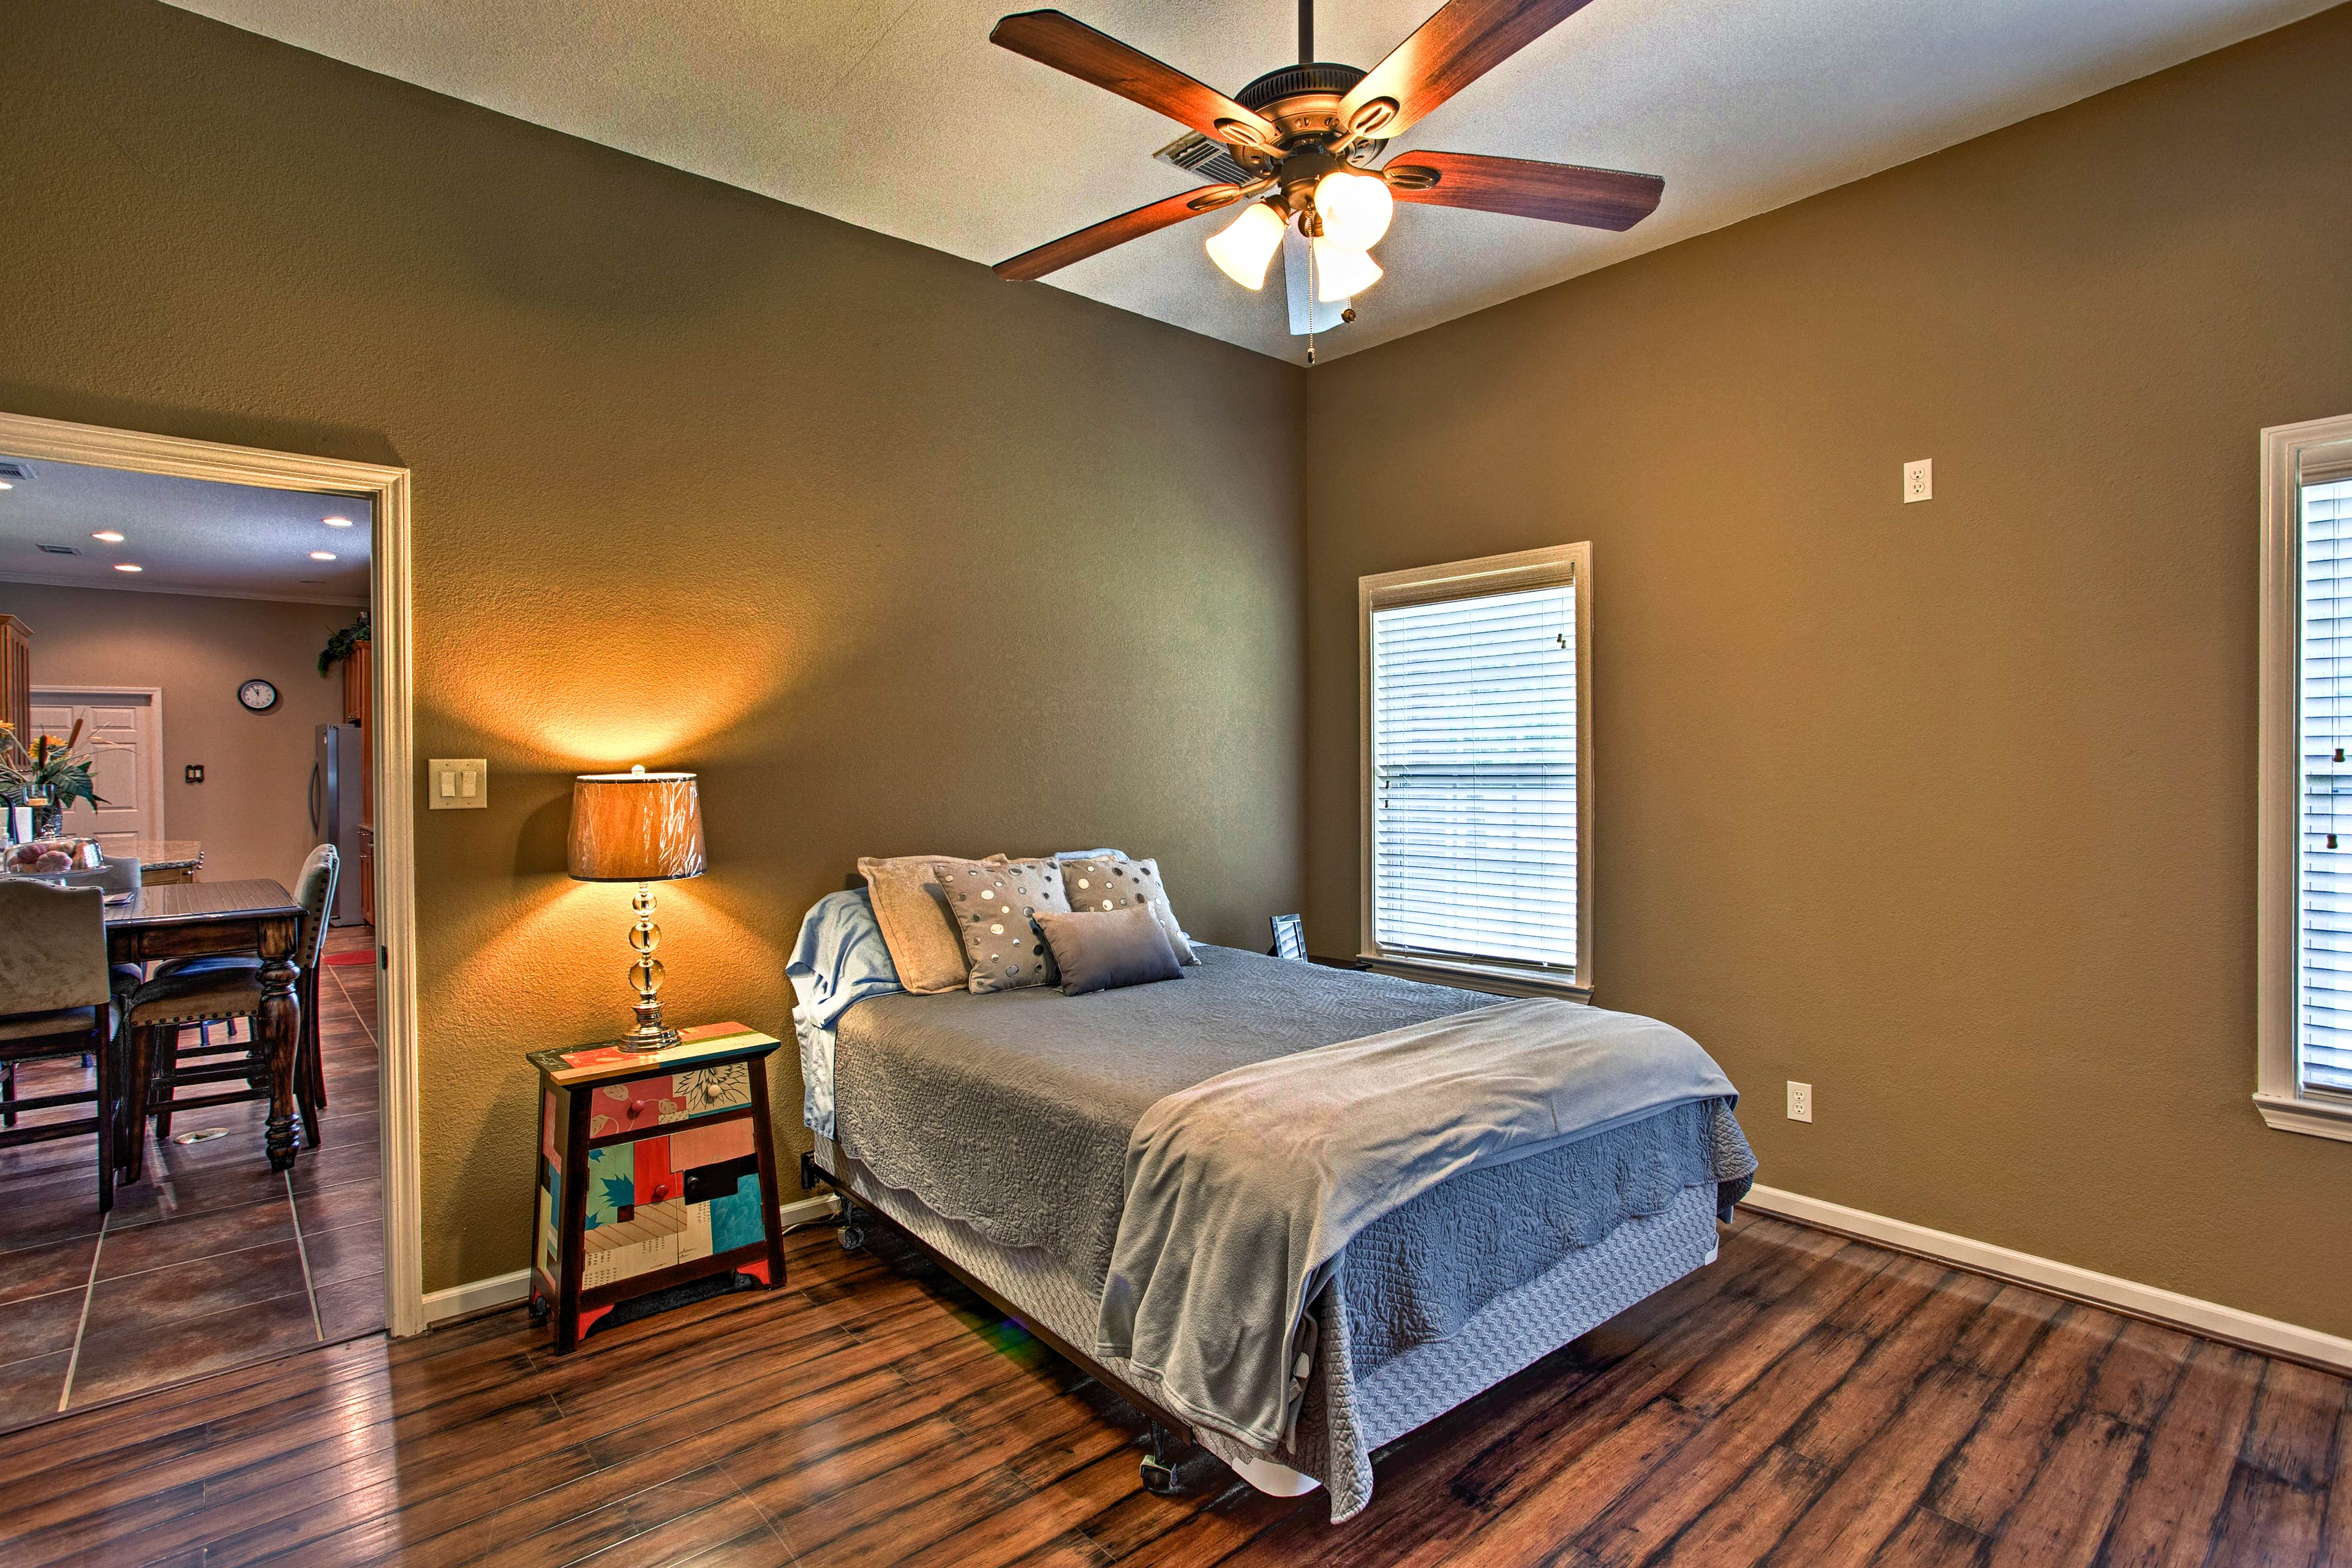 The bedrooms comfortably sleep 10 guests - perfect for family trips.